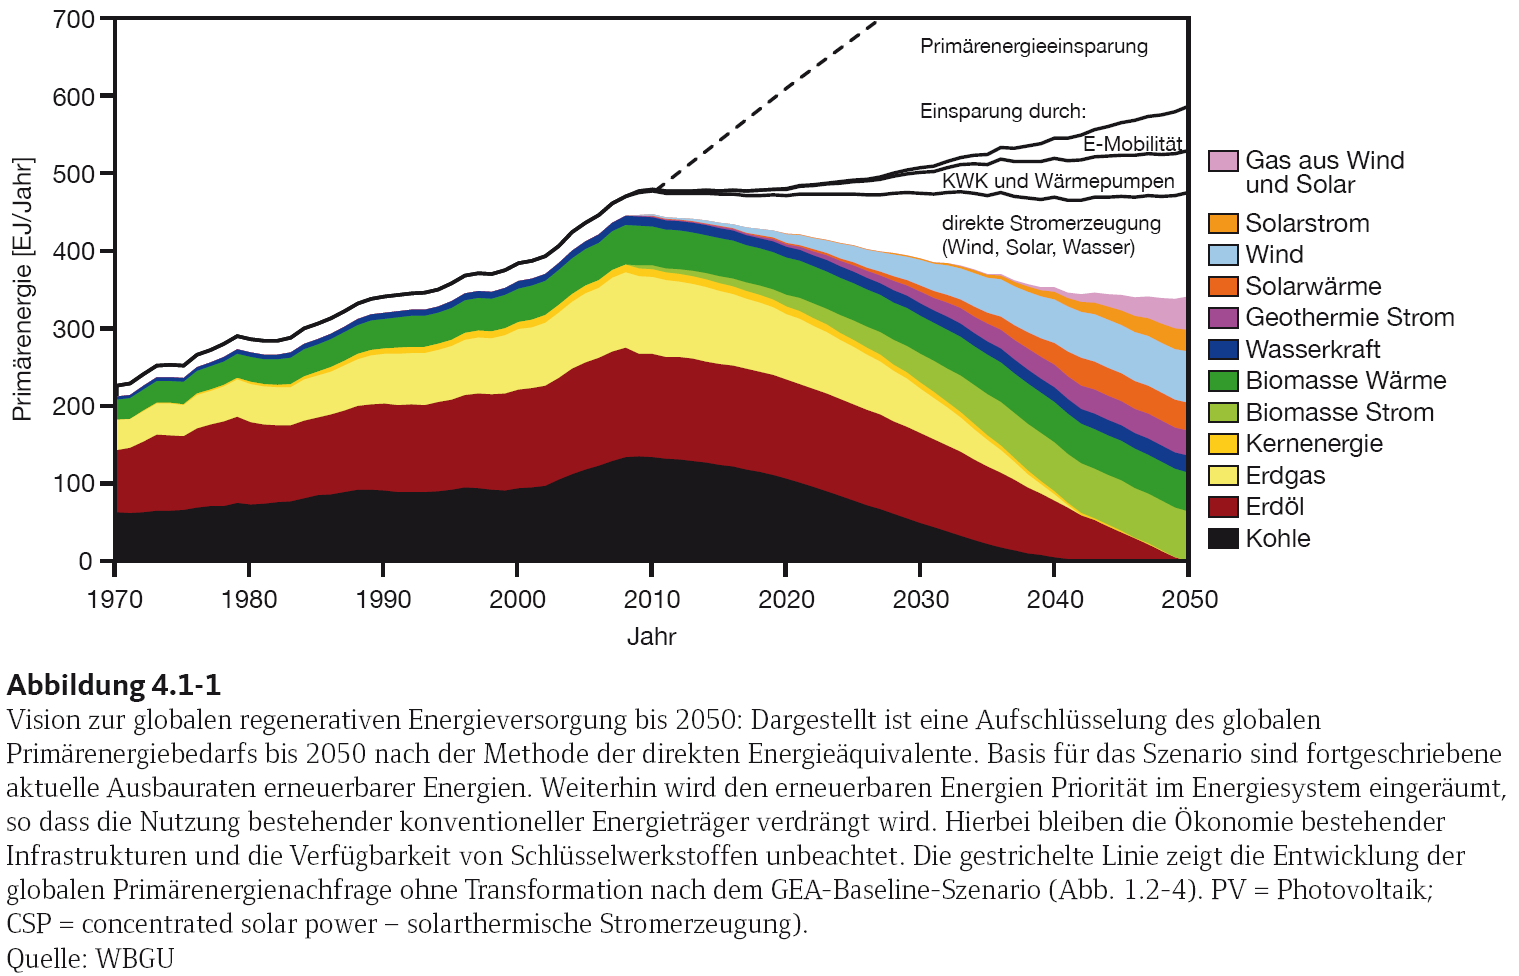 Primary Energy in EJ / a Vision for a Energy System with 100% Renewable Energy Change of primary energy demand world-wide until 2050 Scource: WBGU IEA World Energy Outlook Reference Scenario Energy